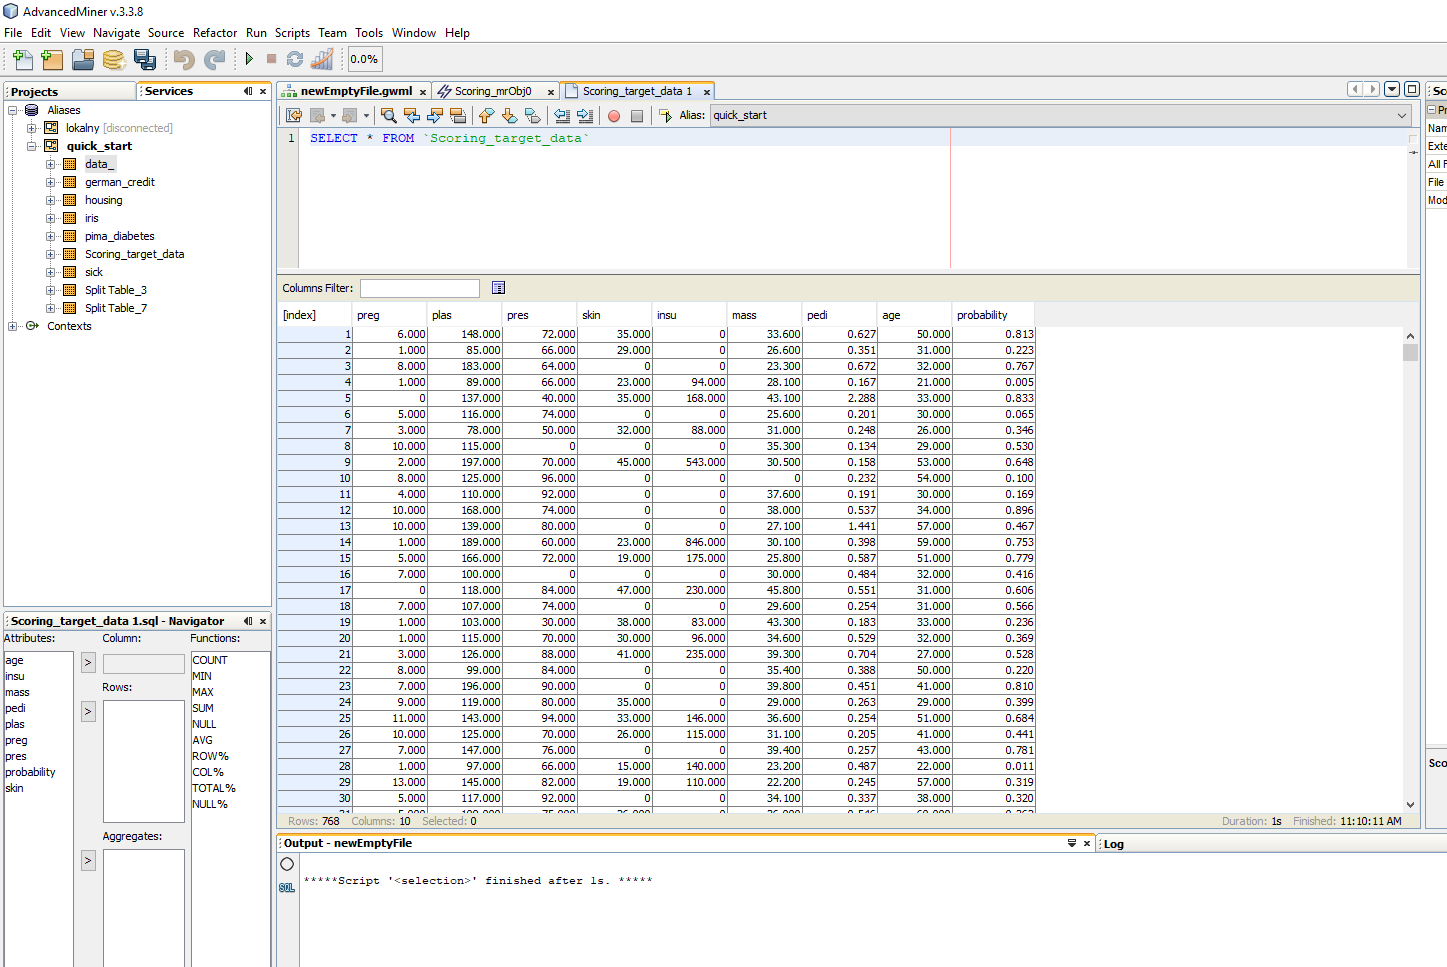 Building predictive models in AdvancedMiner - 30